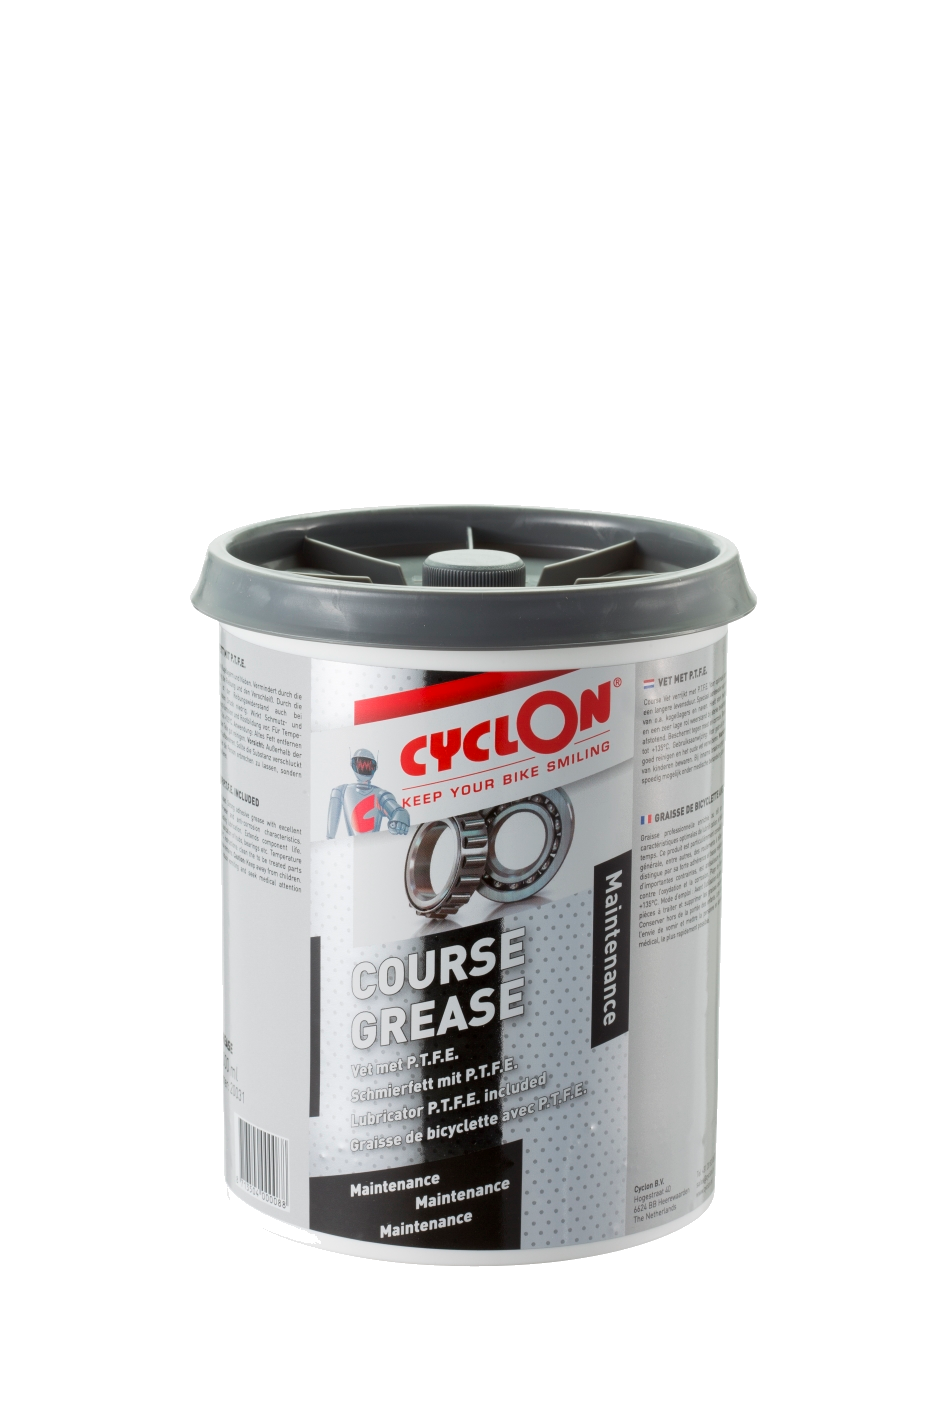 Bicycle Maintenance Course Grease Tube 1000ml Cyclon Bike Care